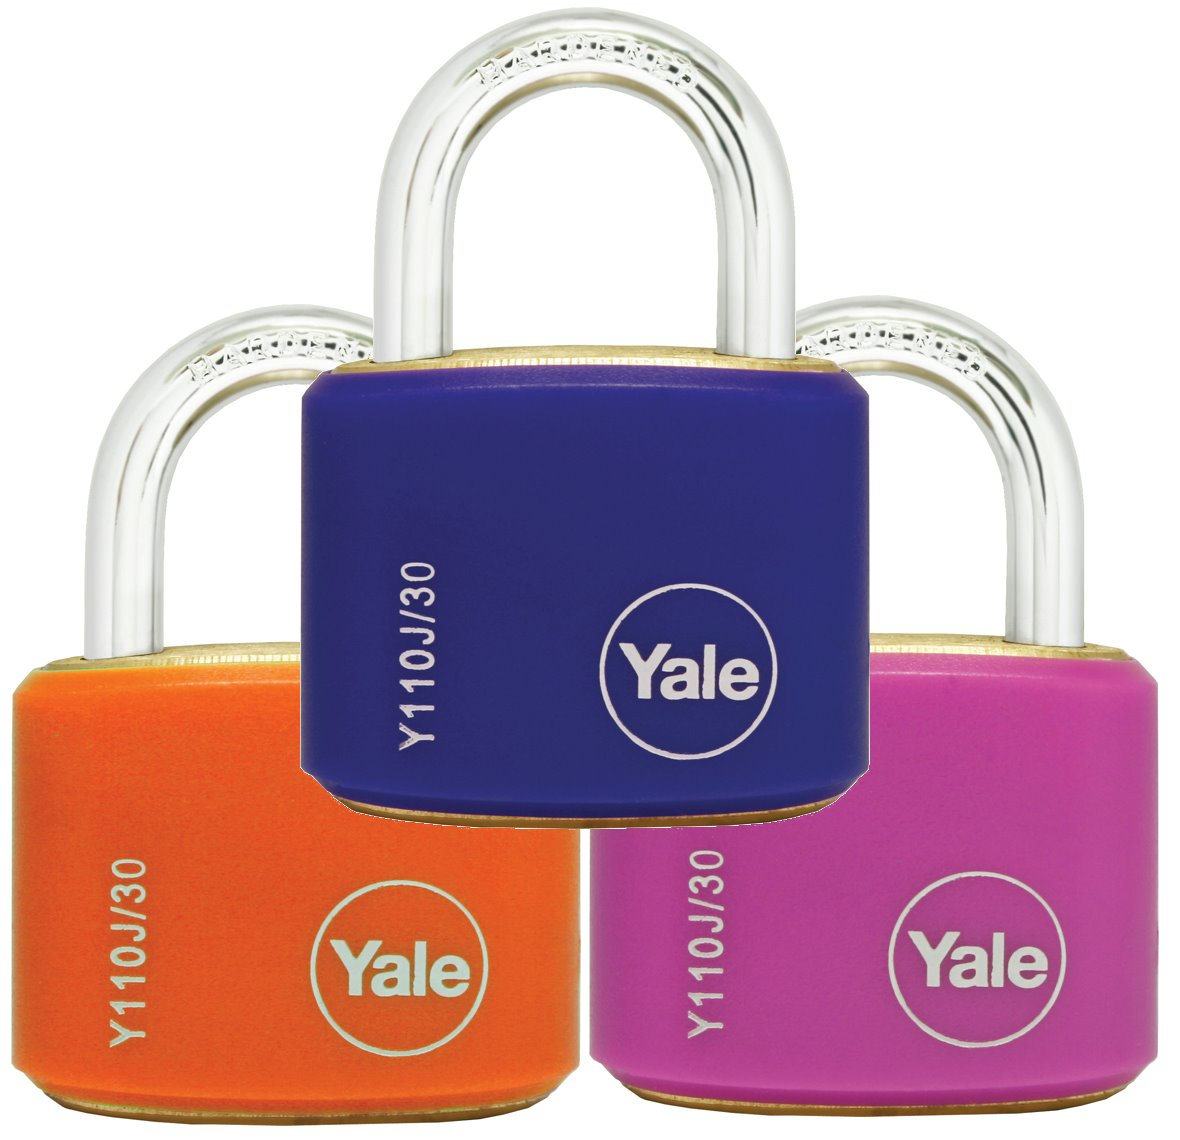 Y110J/30/117/2 - Yale Classic Series Outdoor Color Brass Padlock 34mm with Multi-pack (Pink/Blue/Orange)